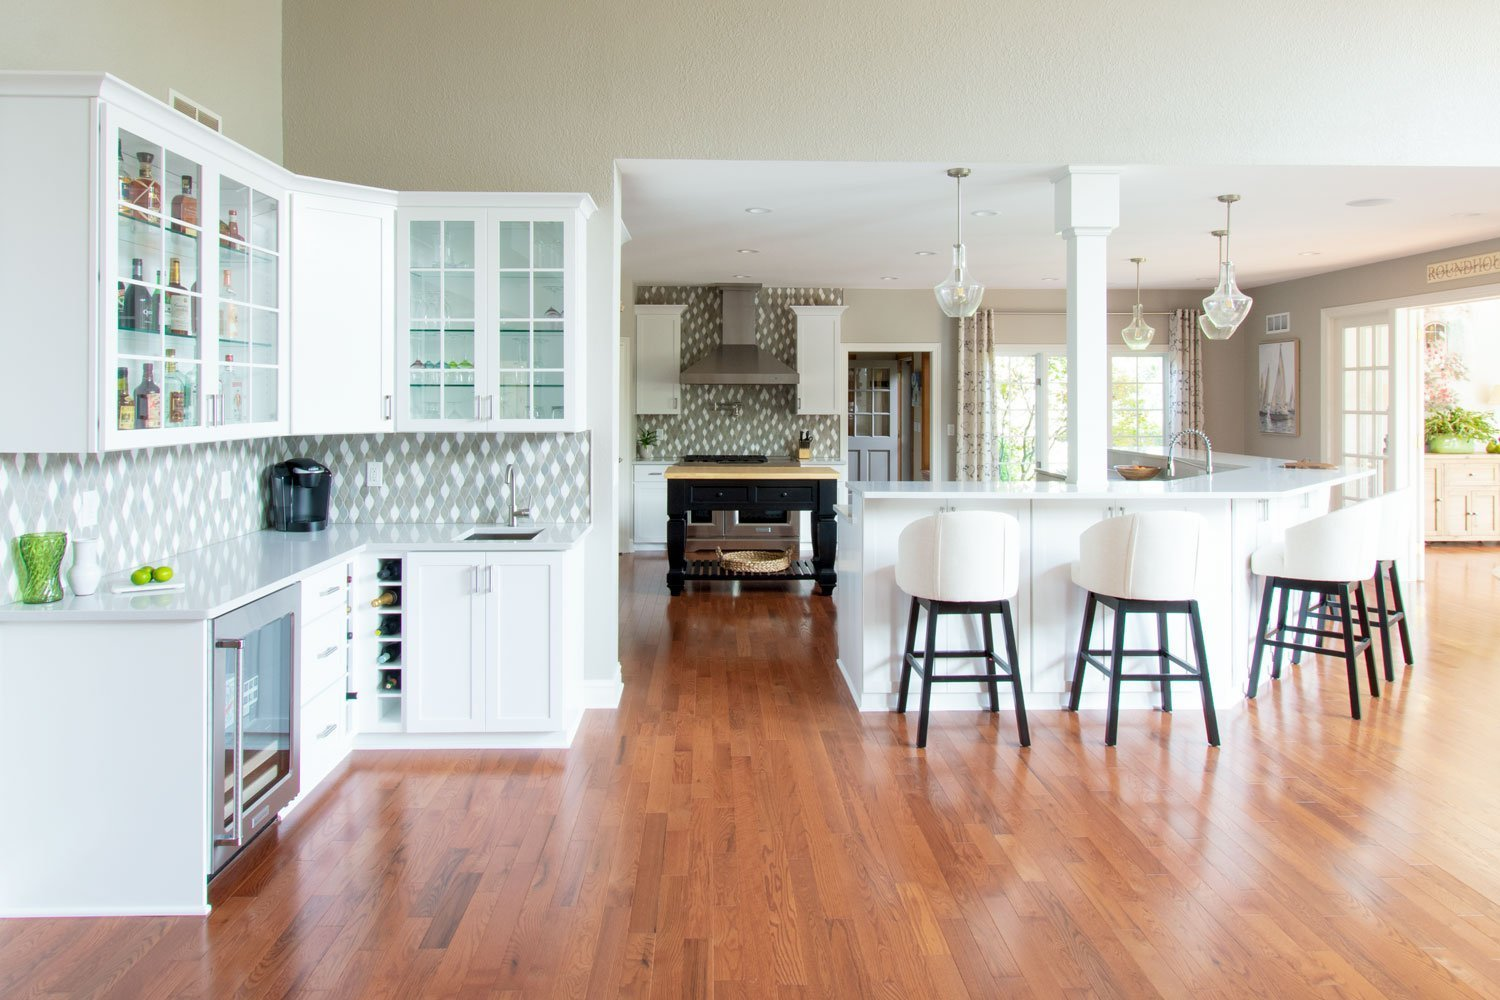 Kowalske Pewaukee Whole House open concept Kitchen Remodel